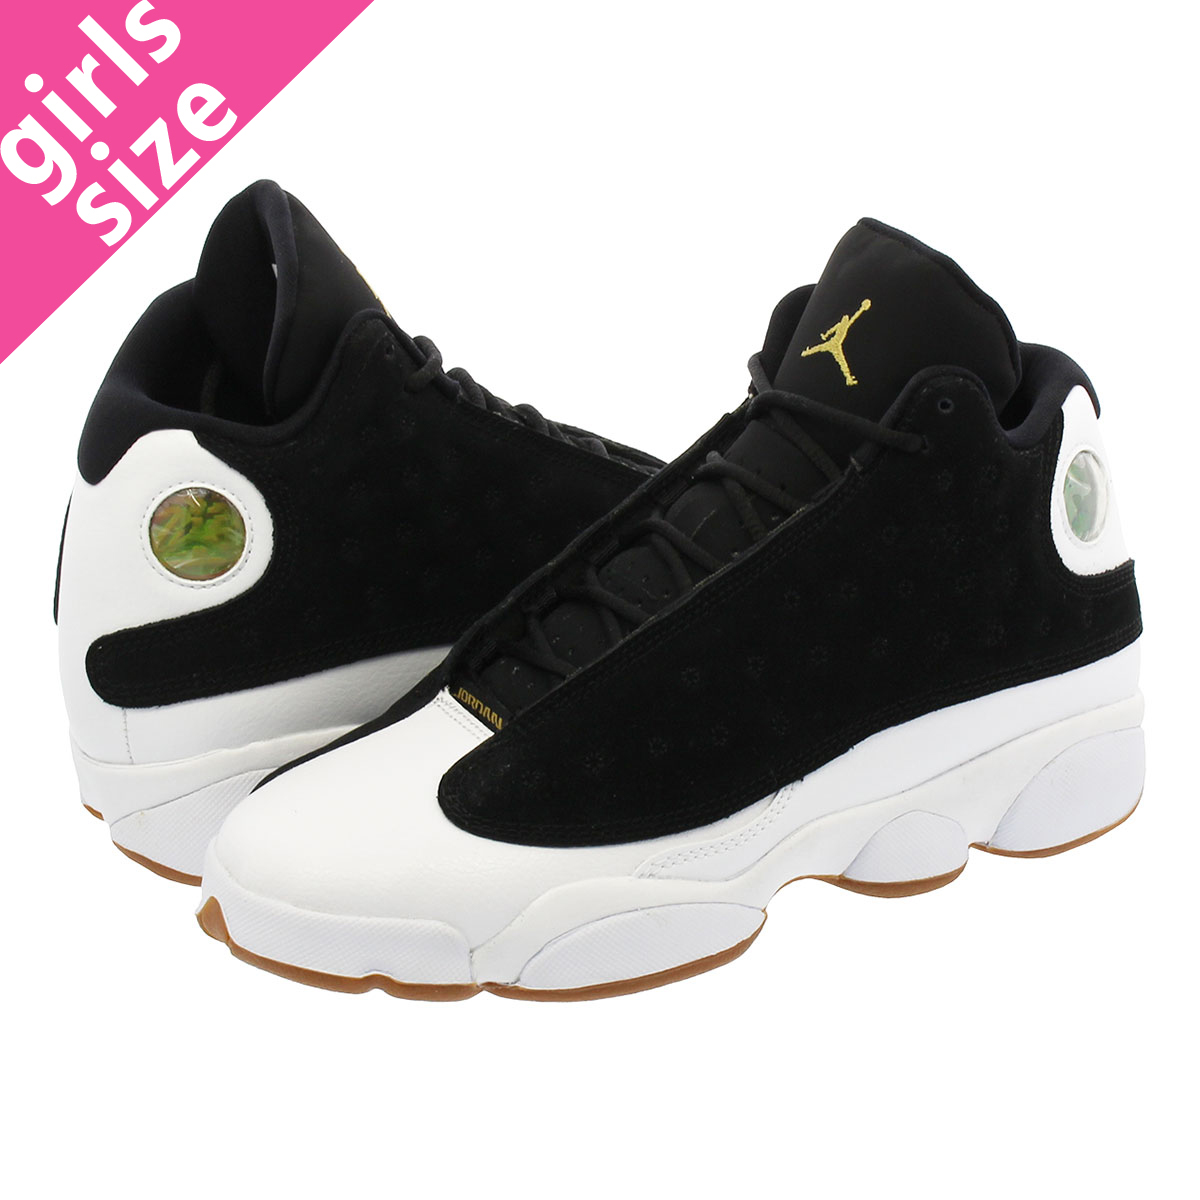 new style 3a76e abcae NIKE AIR JORDAN 13 RETRO GG Nike Air Jordan 13 nostalgic GG BLACK/METALLIC  GOLD/WHITE/GUM MED BROWN 439,358-021